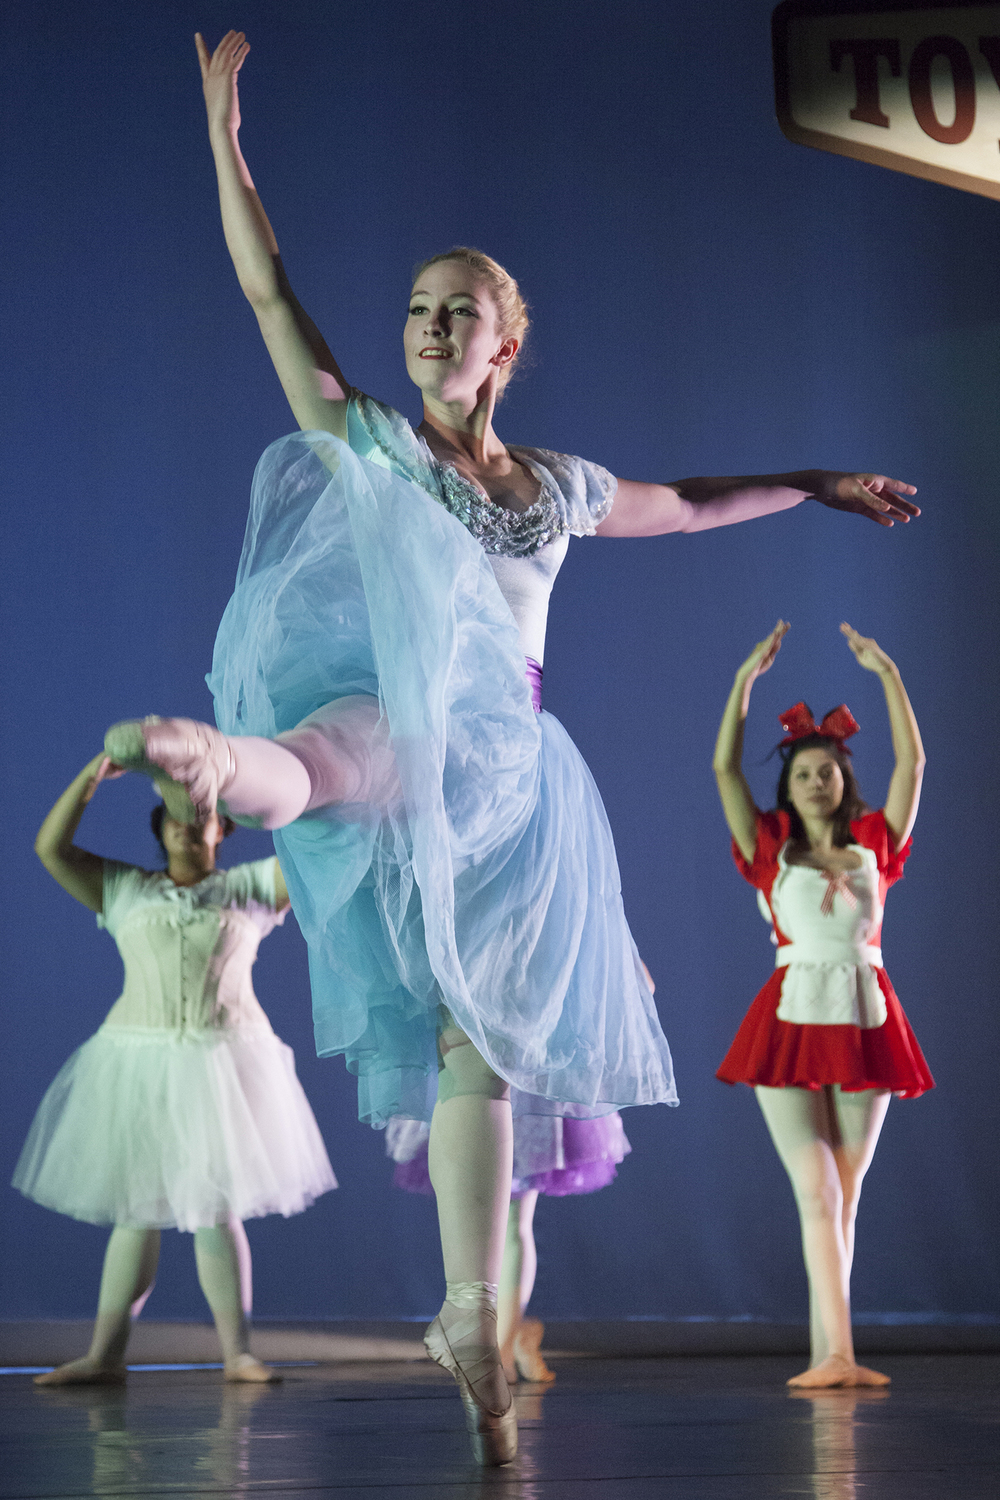 """Cassandra Godinez, center, plays the lead role of a dancing doll during the third act of """"Vignettes"""" on Thursday, May 19, 2016, inside the Performing Arts Center Mainstage in Woodland Hills, Calif."""